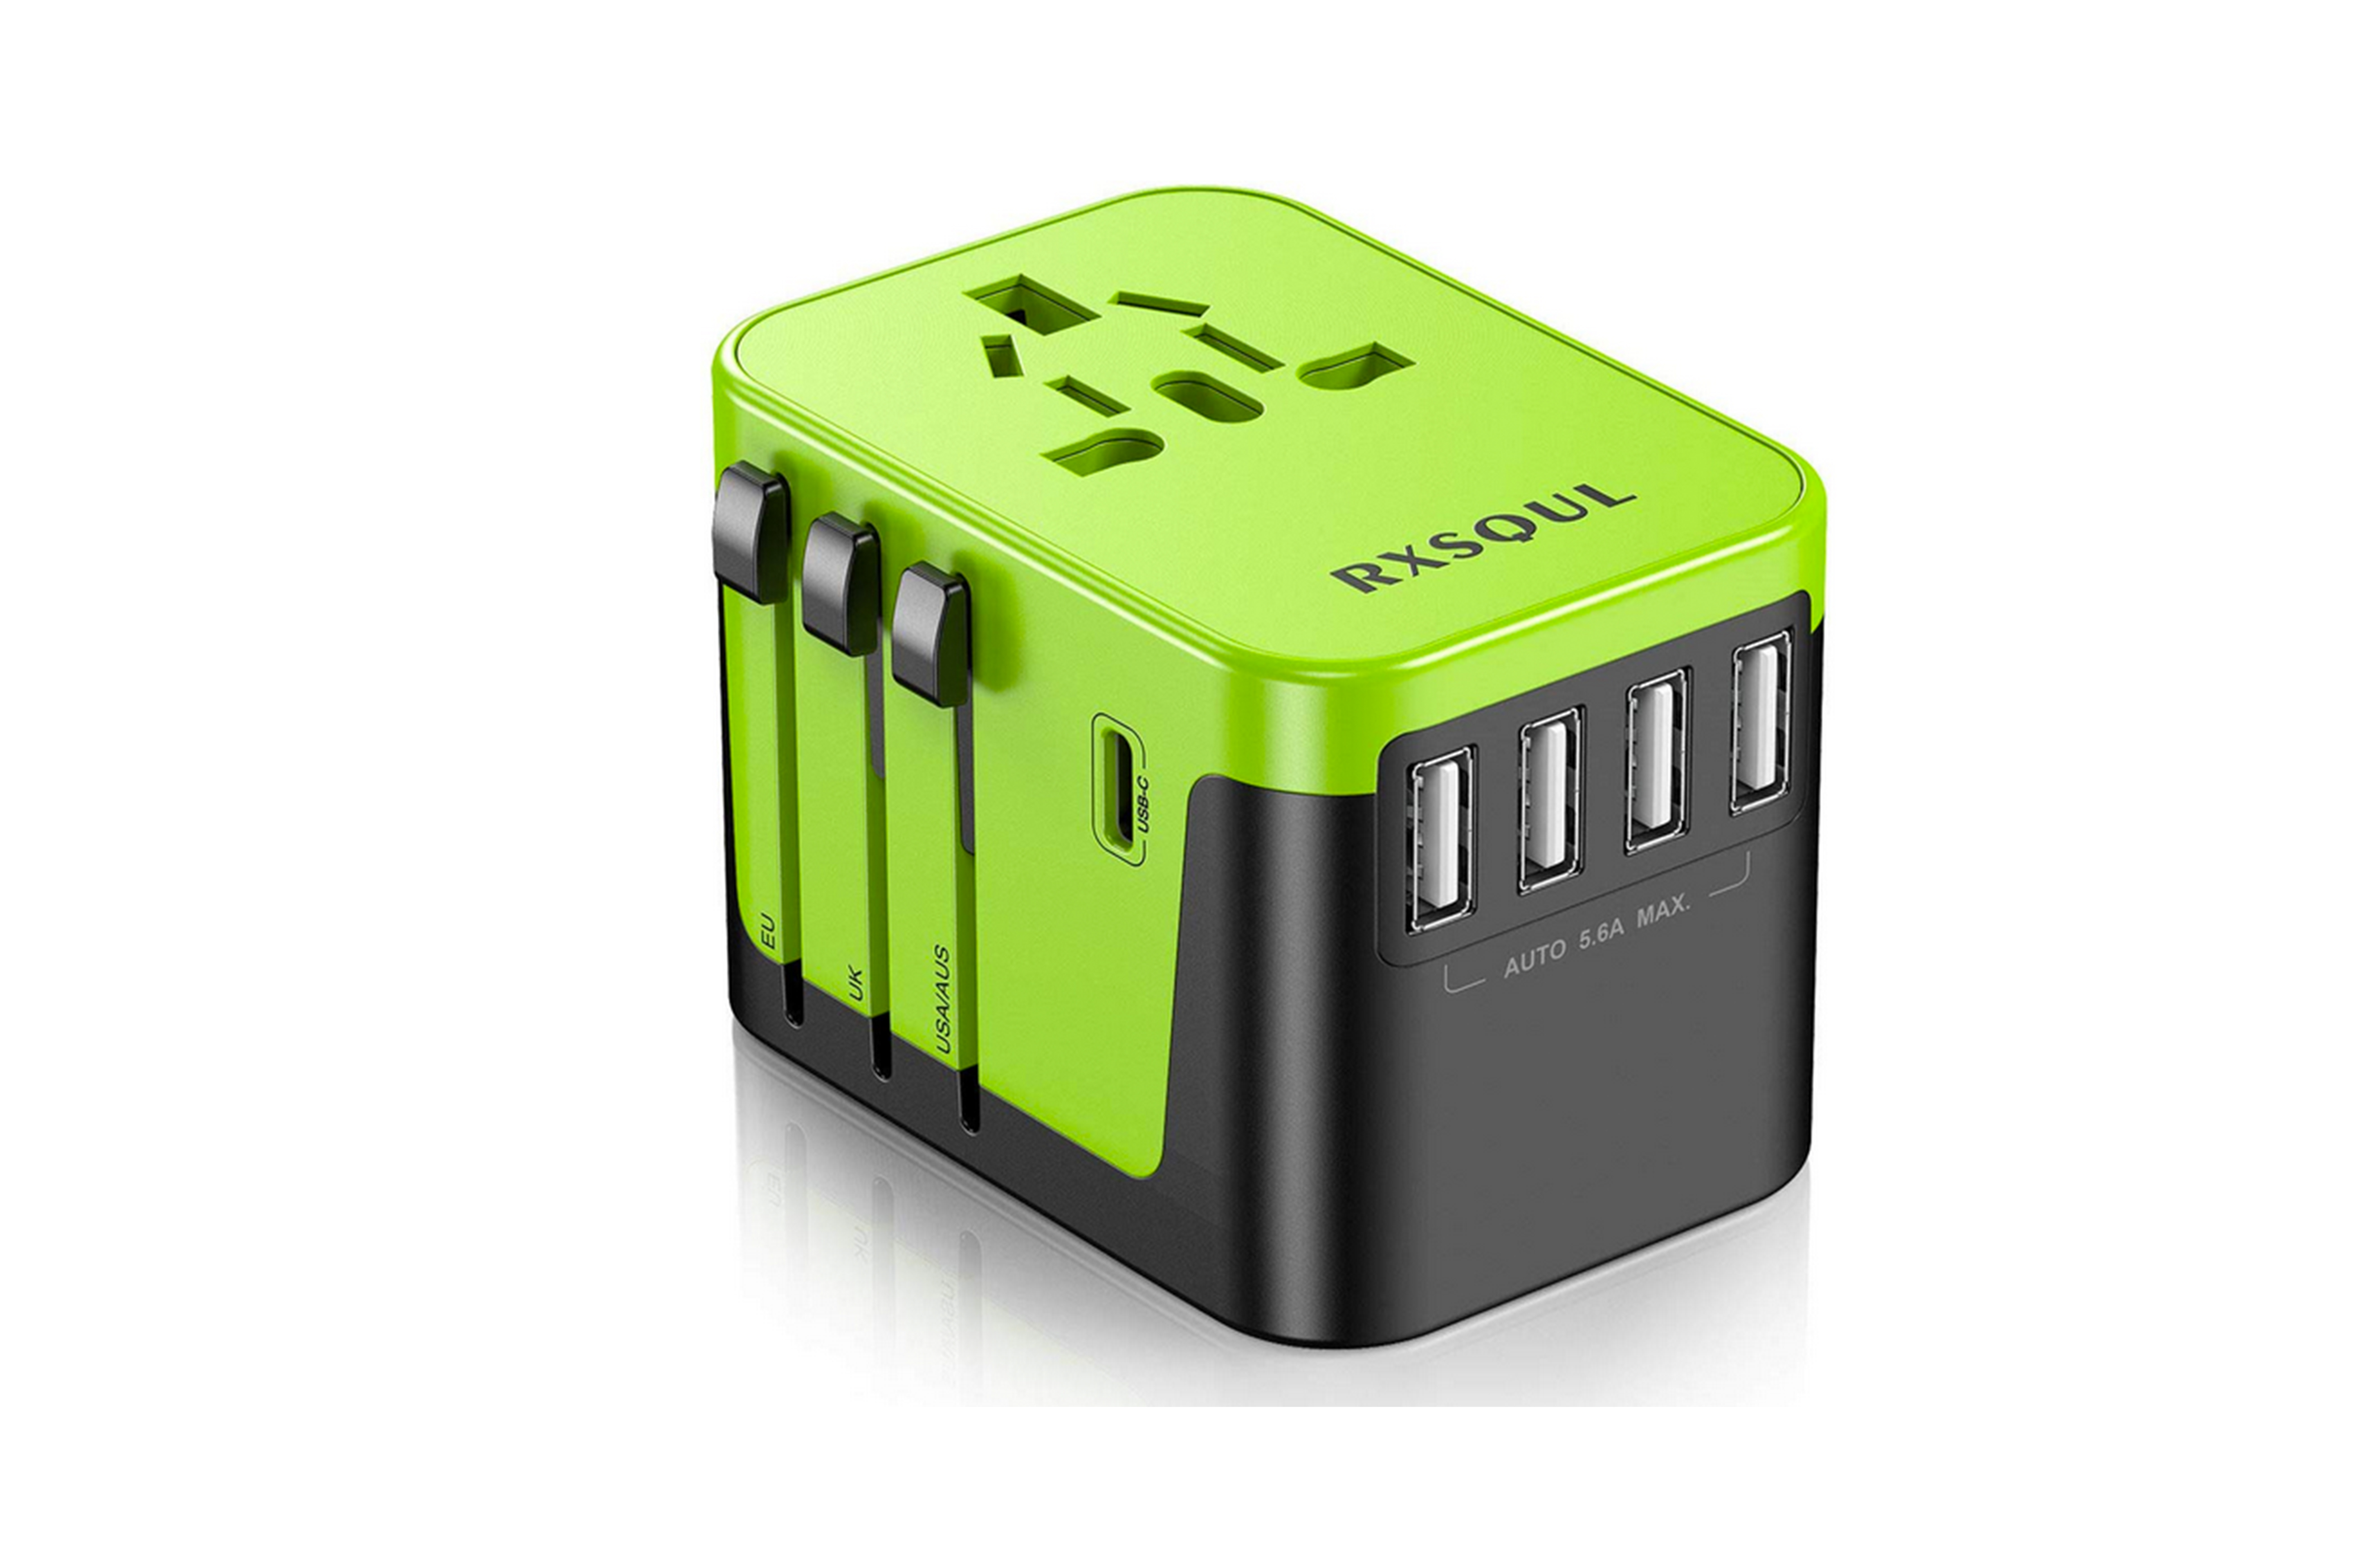 Travel Adapter Amazon Offer Expired Amazon Lightning Deal International Travel